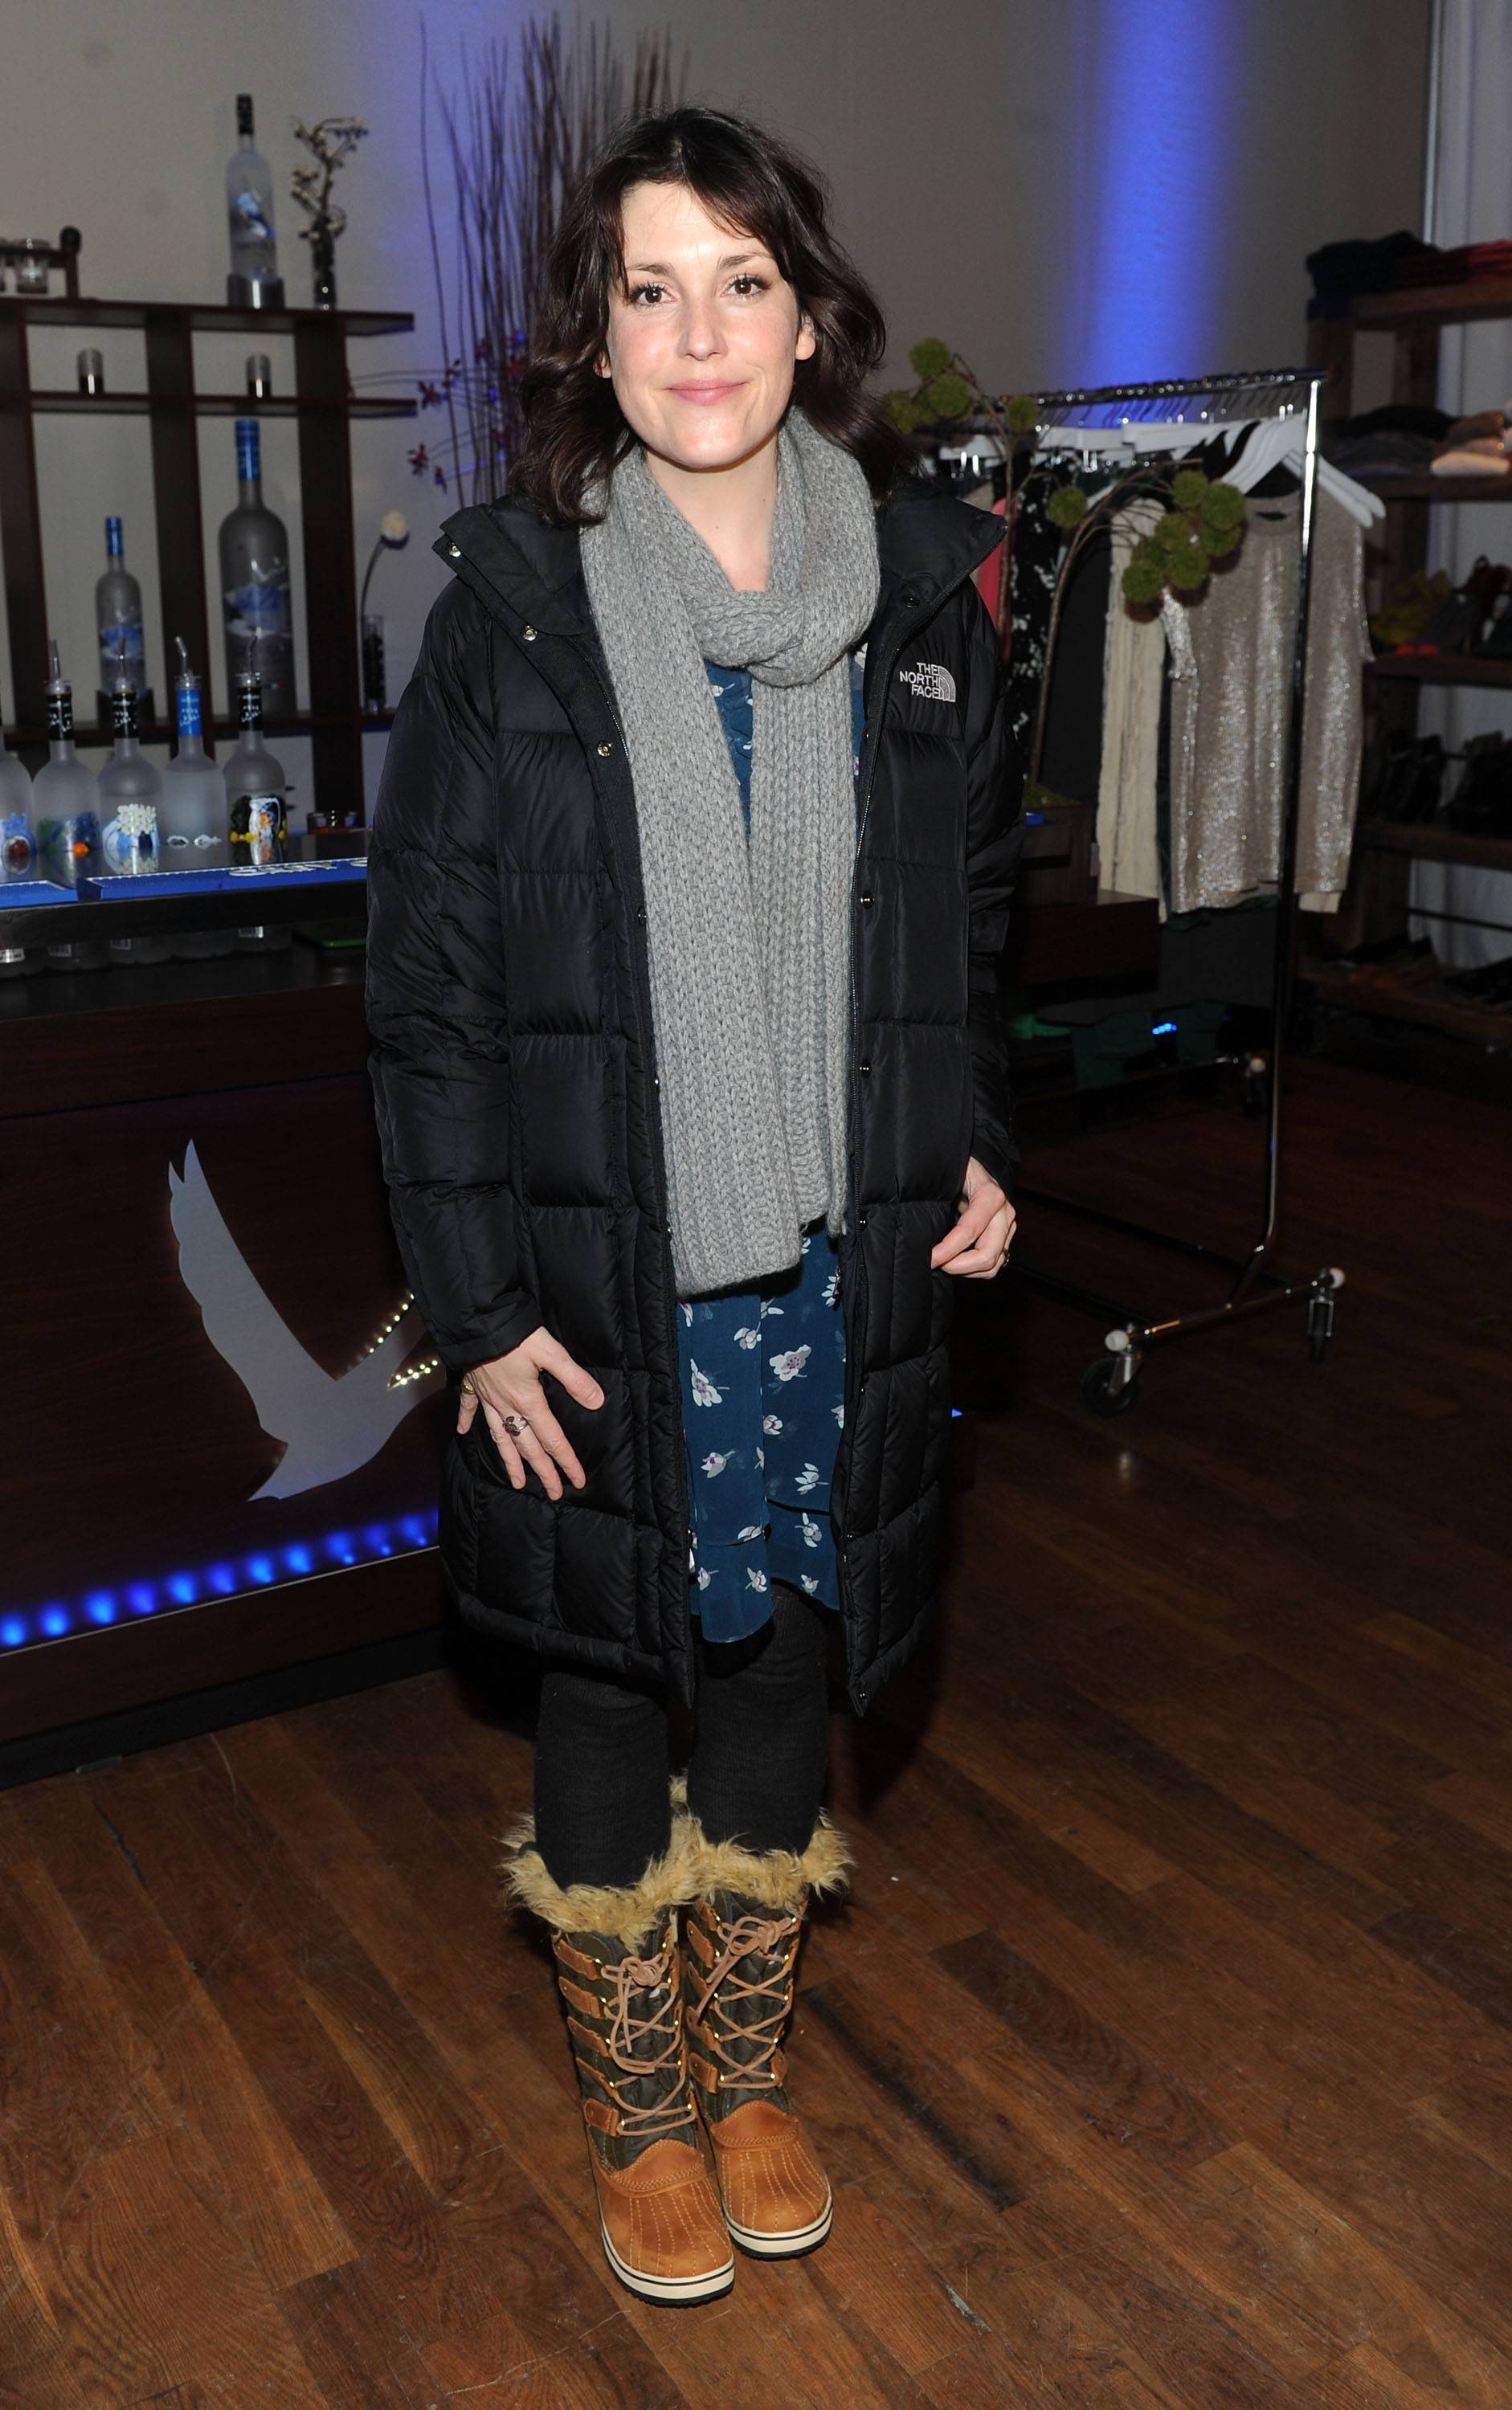 Melanie Lynskey at the GREY GOOSE Blue Door at Sundance on Friday 1-20-12